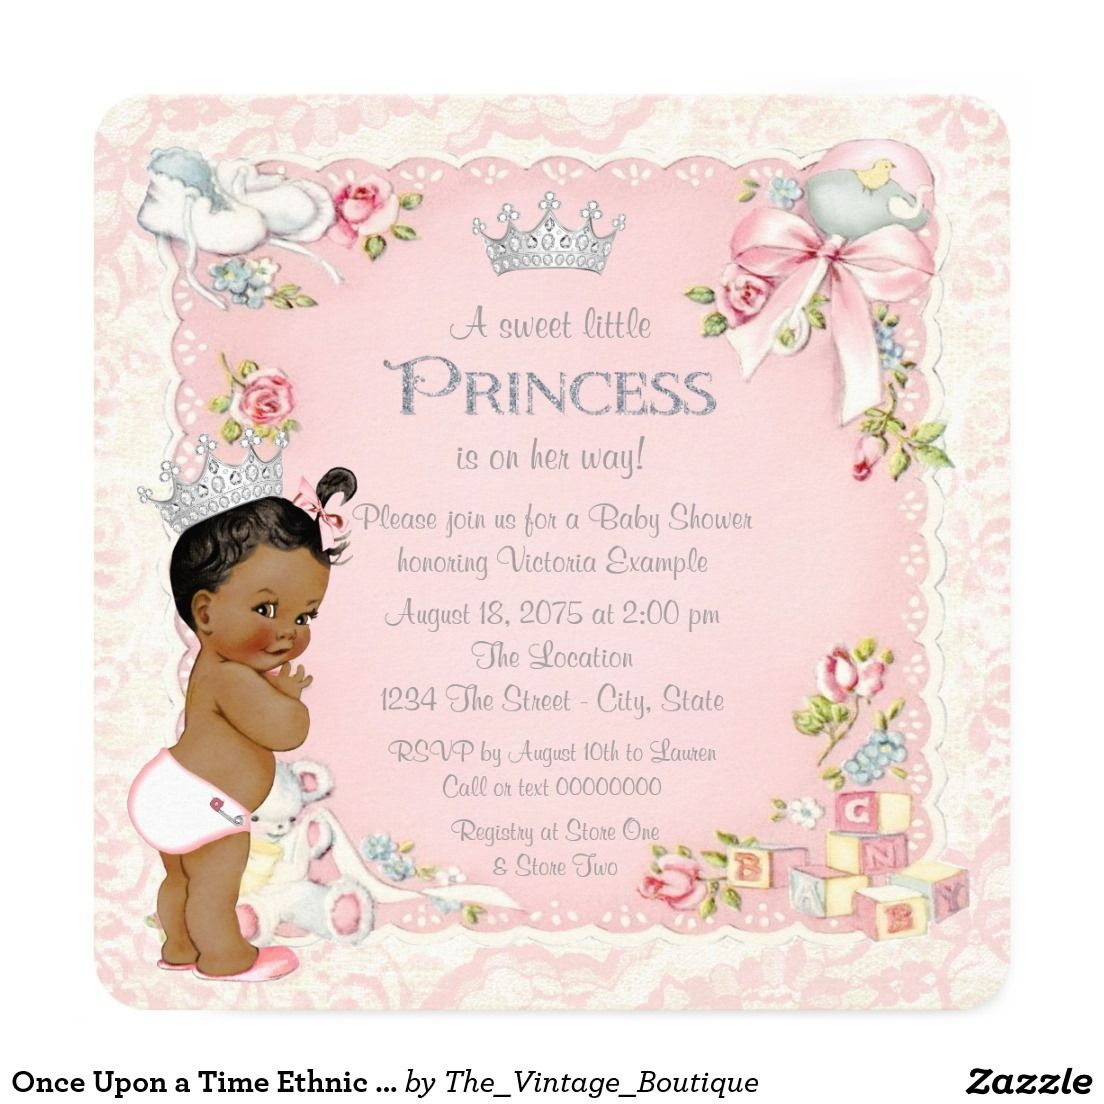 Once Upon a Time Ethnic Princess Baby Shower Card | Princess baby ...